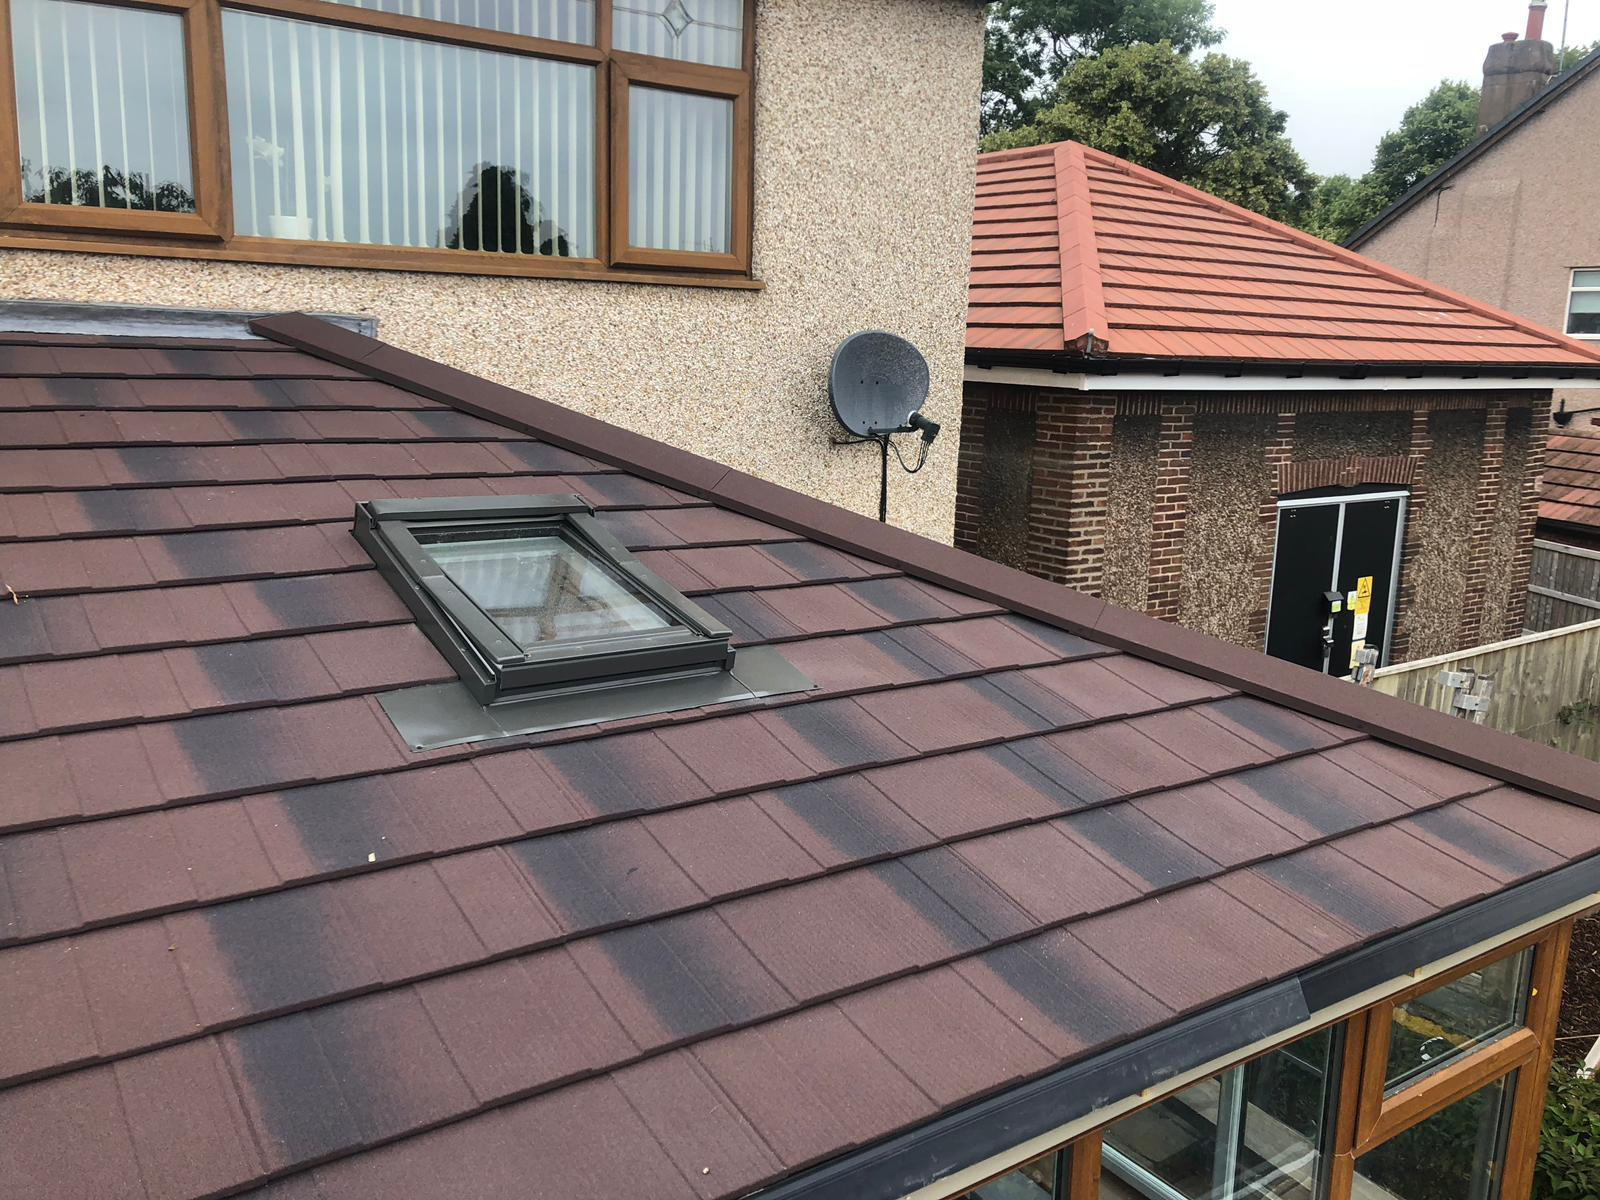 Ellesmere Port Conservatory Roof Repairs And Installations Jkw Property Services Ltd